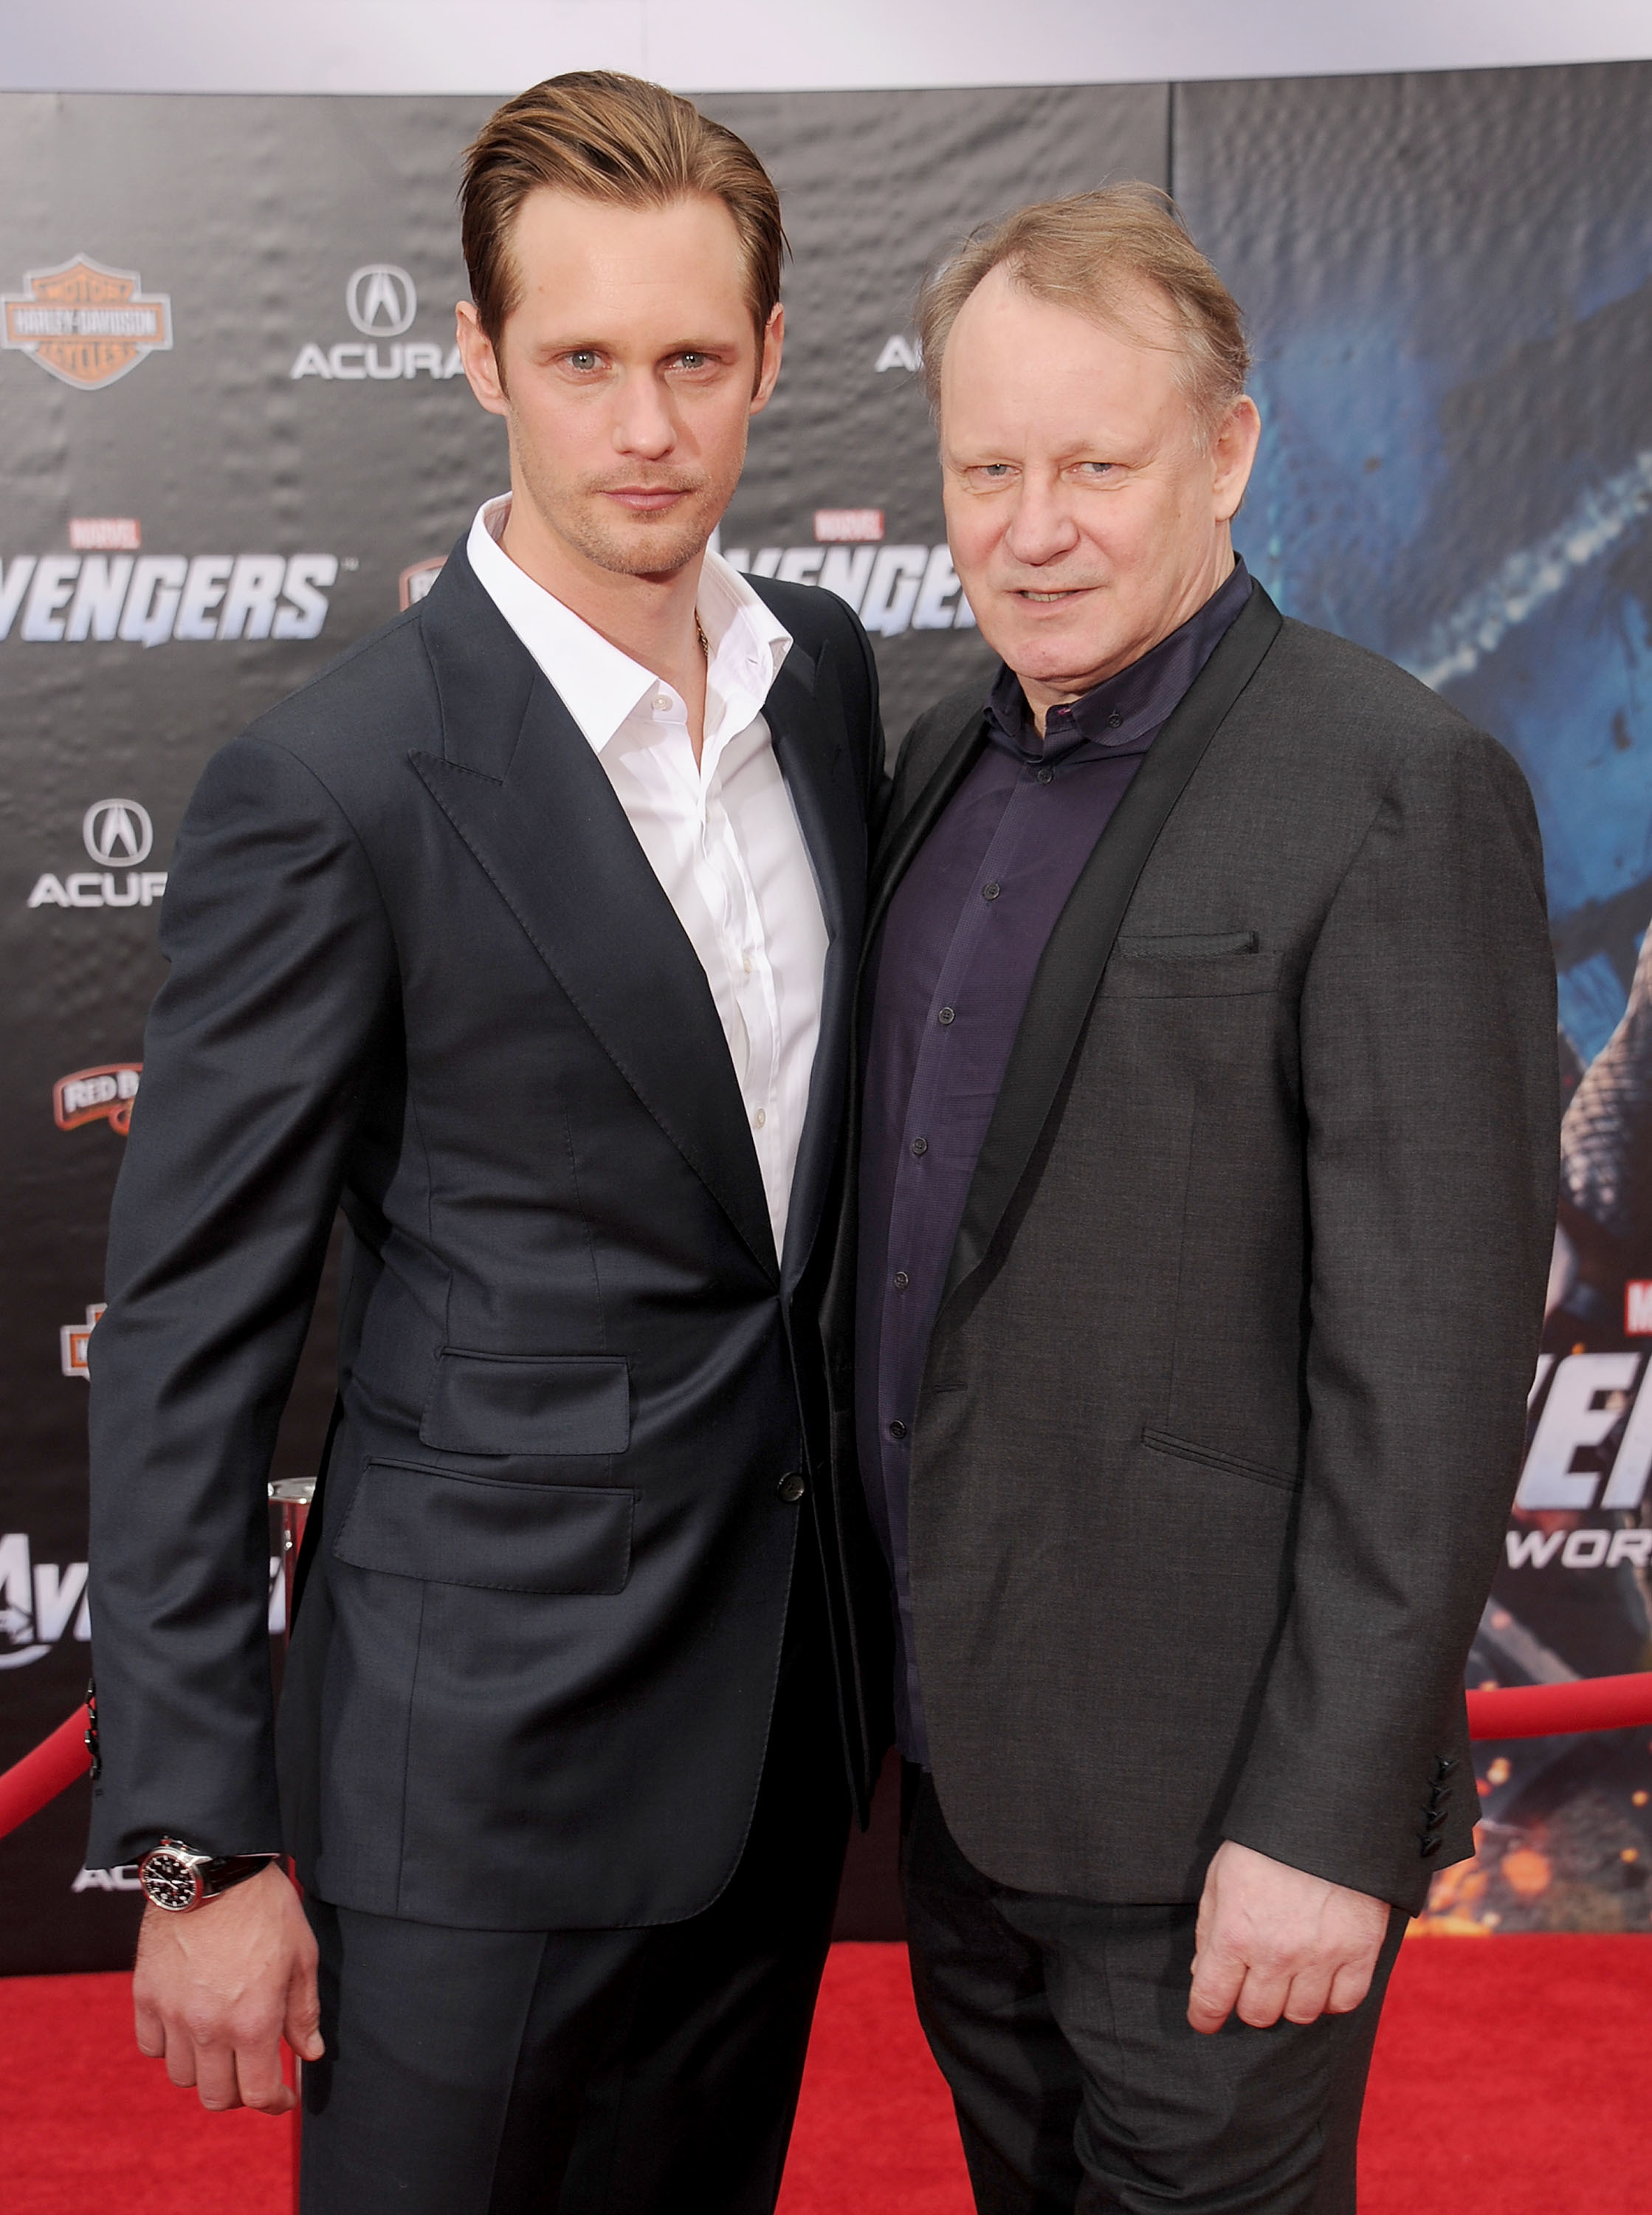 """Alexander Skarsgard and father Stellan Skarsgard arrive at the Los Angeles premiere of """"Marvel's Avengers"""" at the El Capitan Theatre in Hollywood, California on April 11, 2012."""